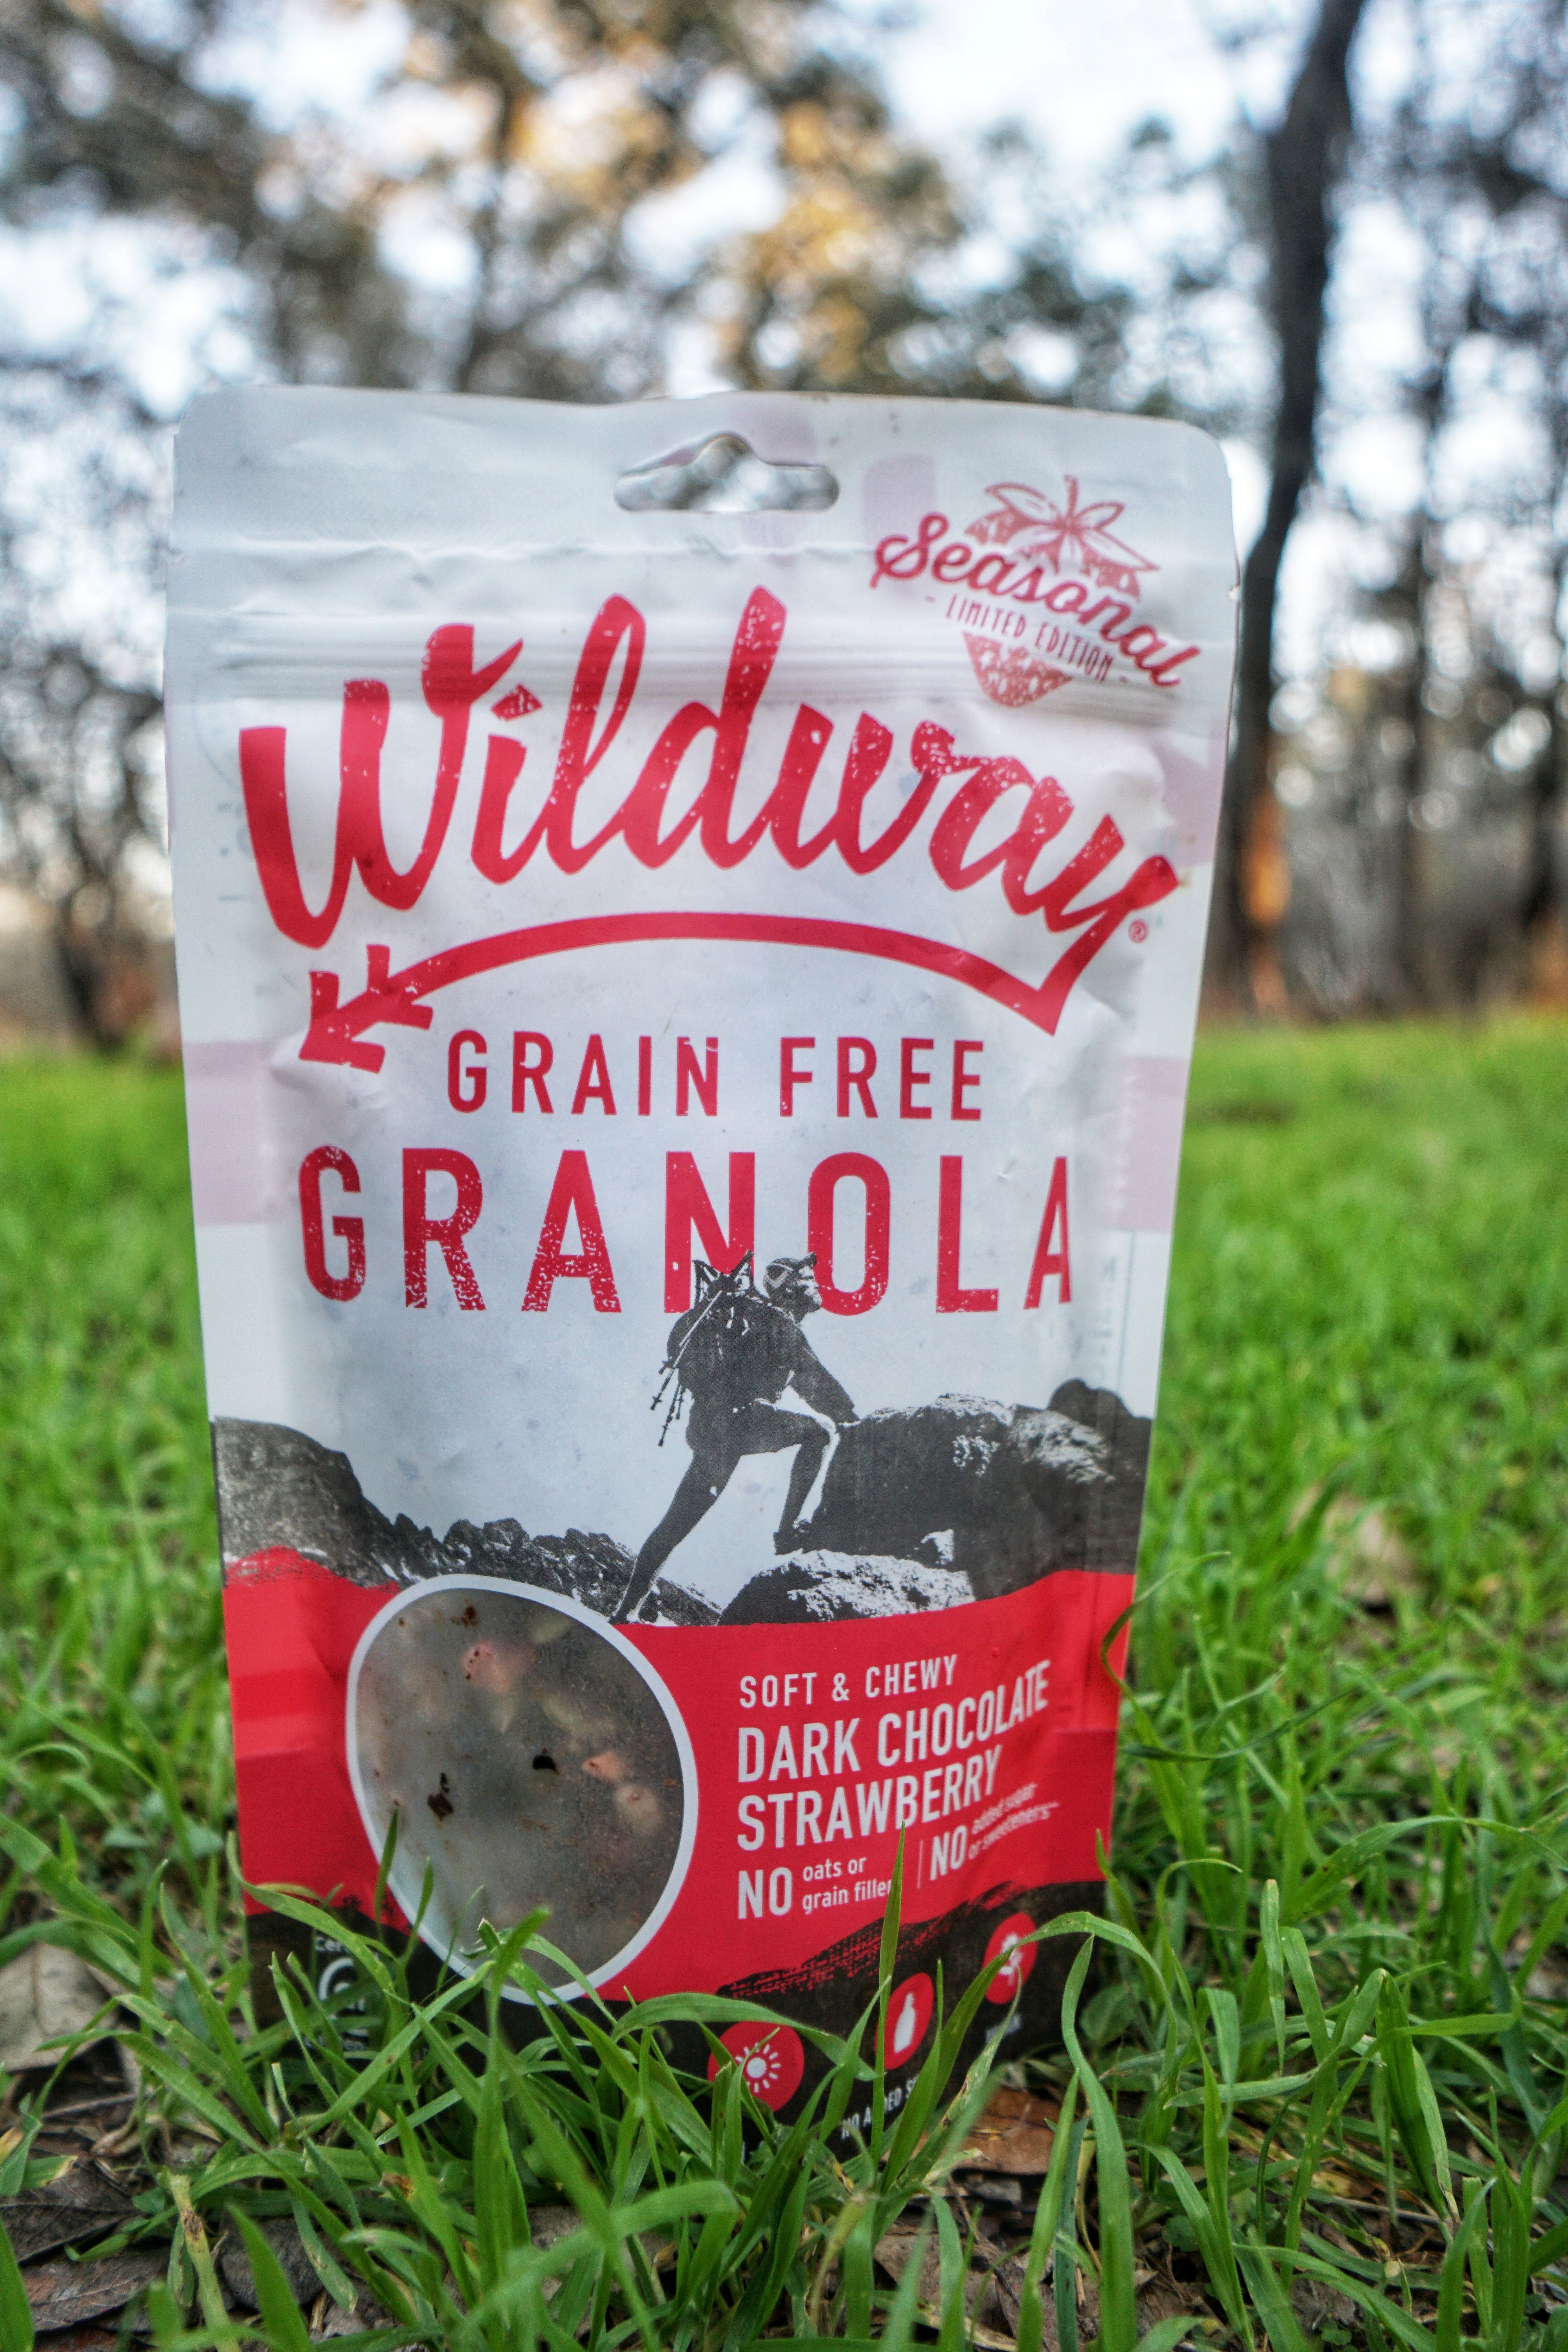 Wildway Launches Seasonal Grain-Free Granola With H-E-B